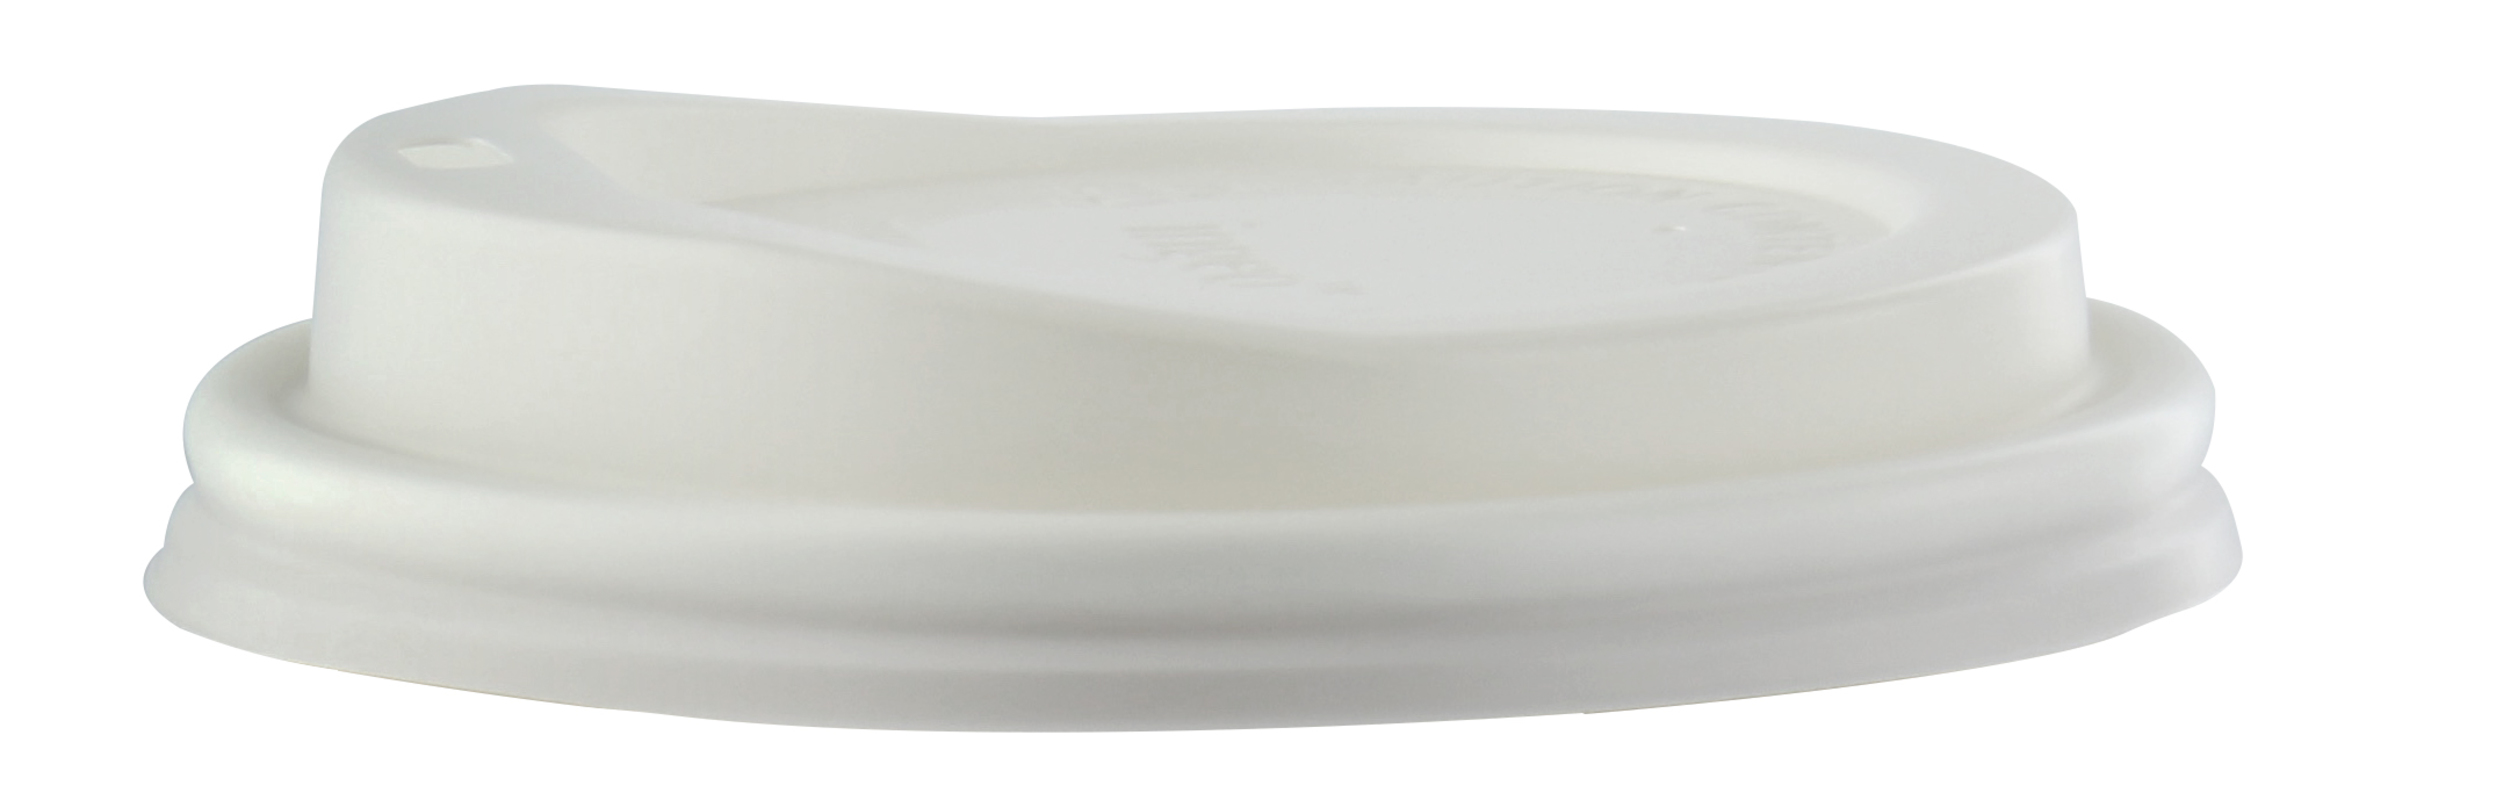 CPLA (Made from Cornstarch & Composable) Coffee Cup Lids for 8oz.